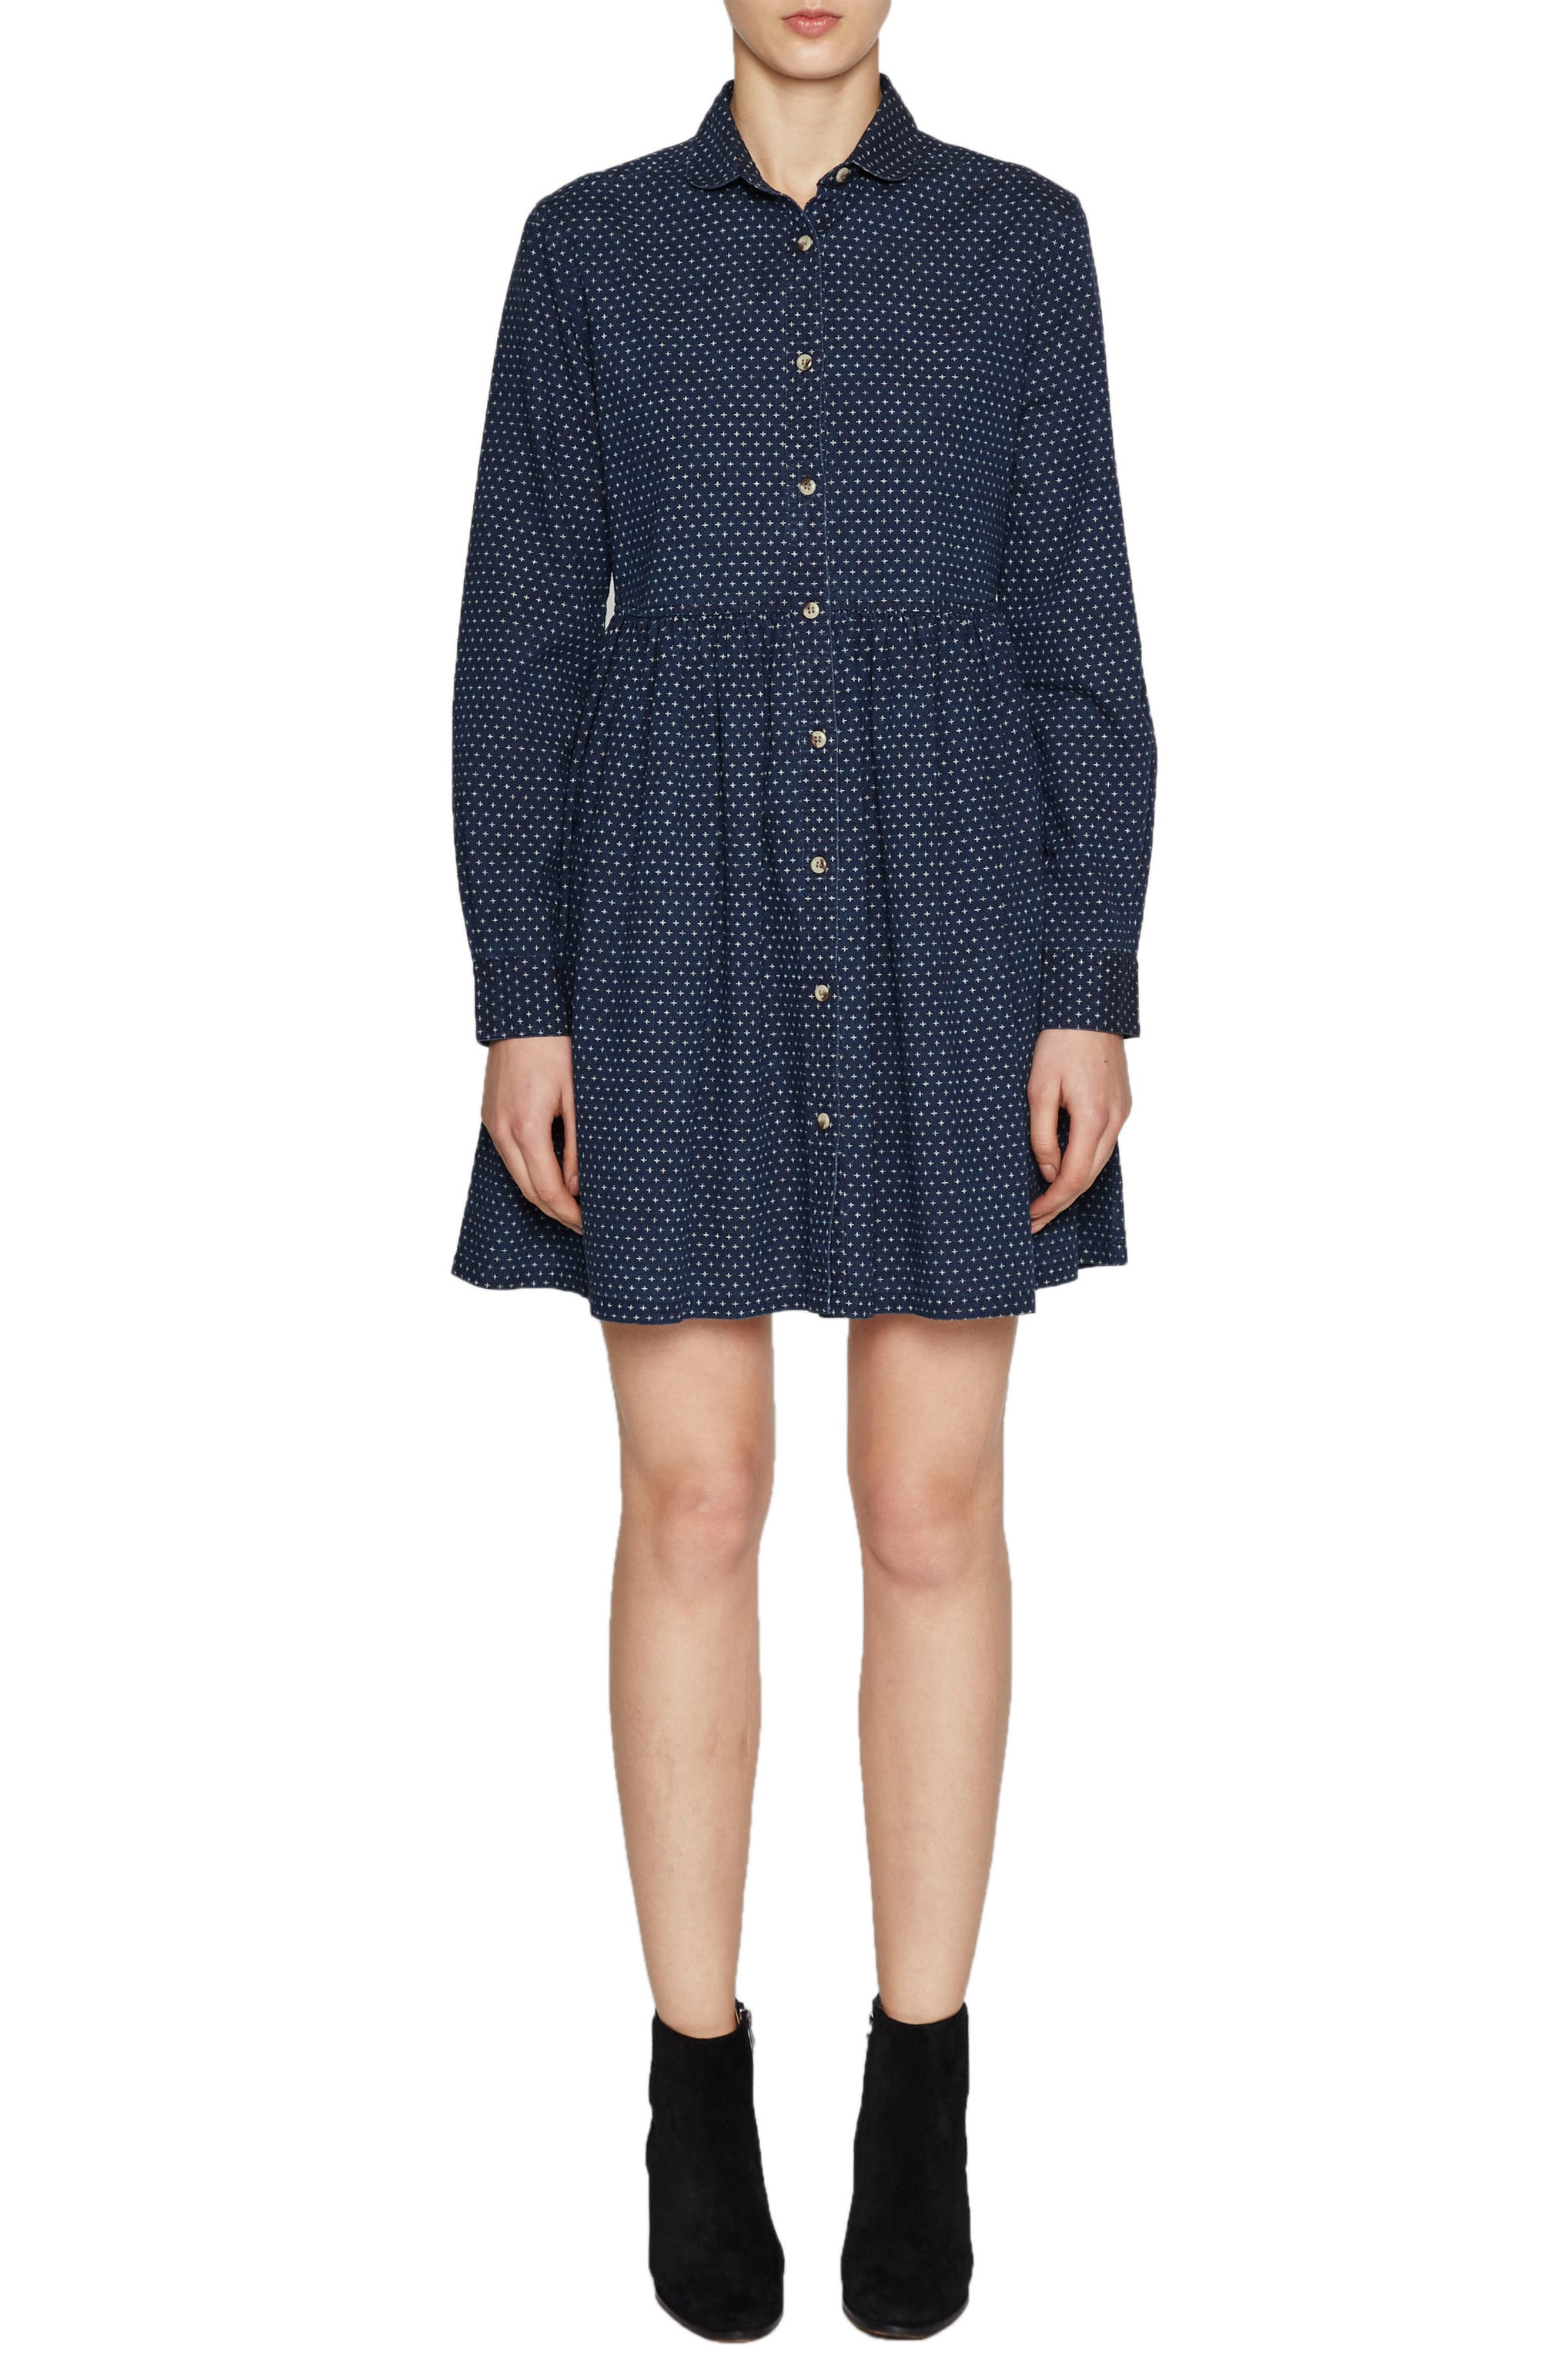 Alternate Image 1 Selected - French Connection Indigo Cross Denim Shirtdress